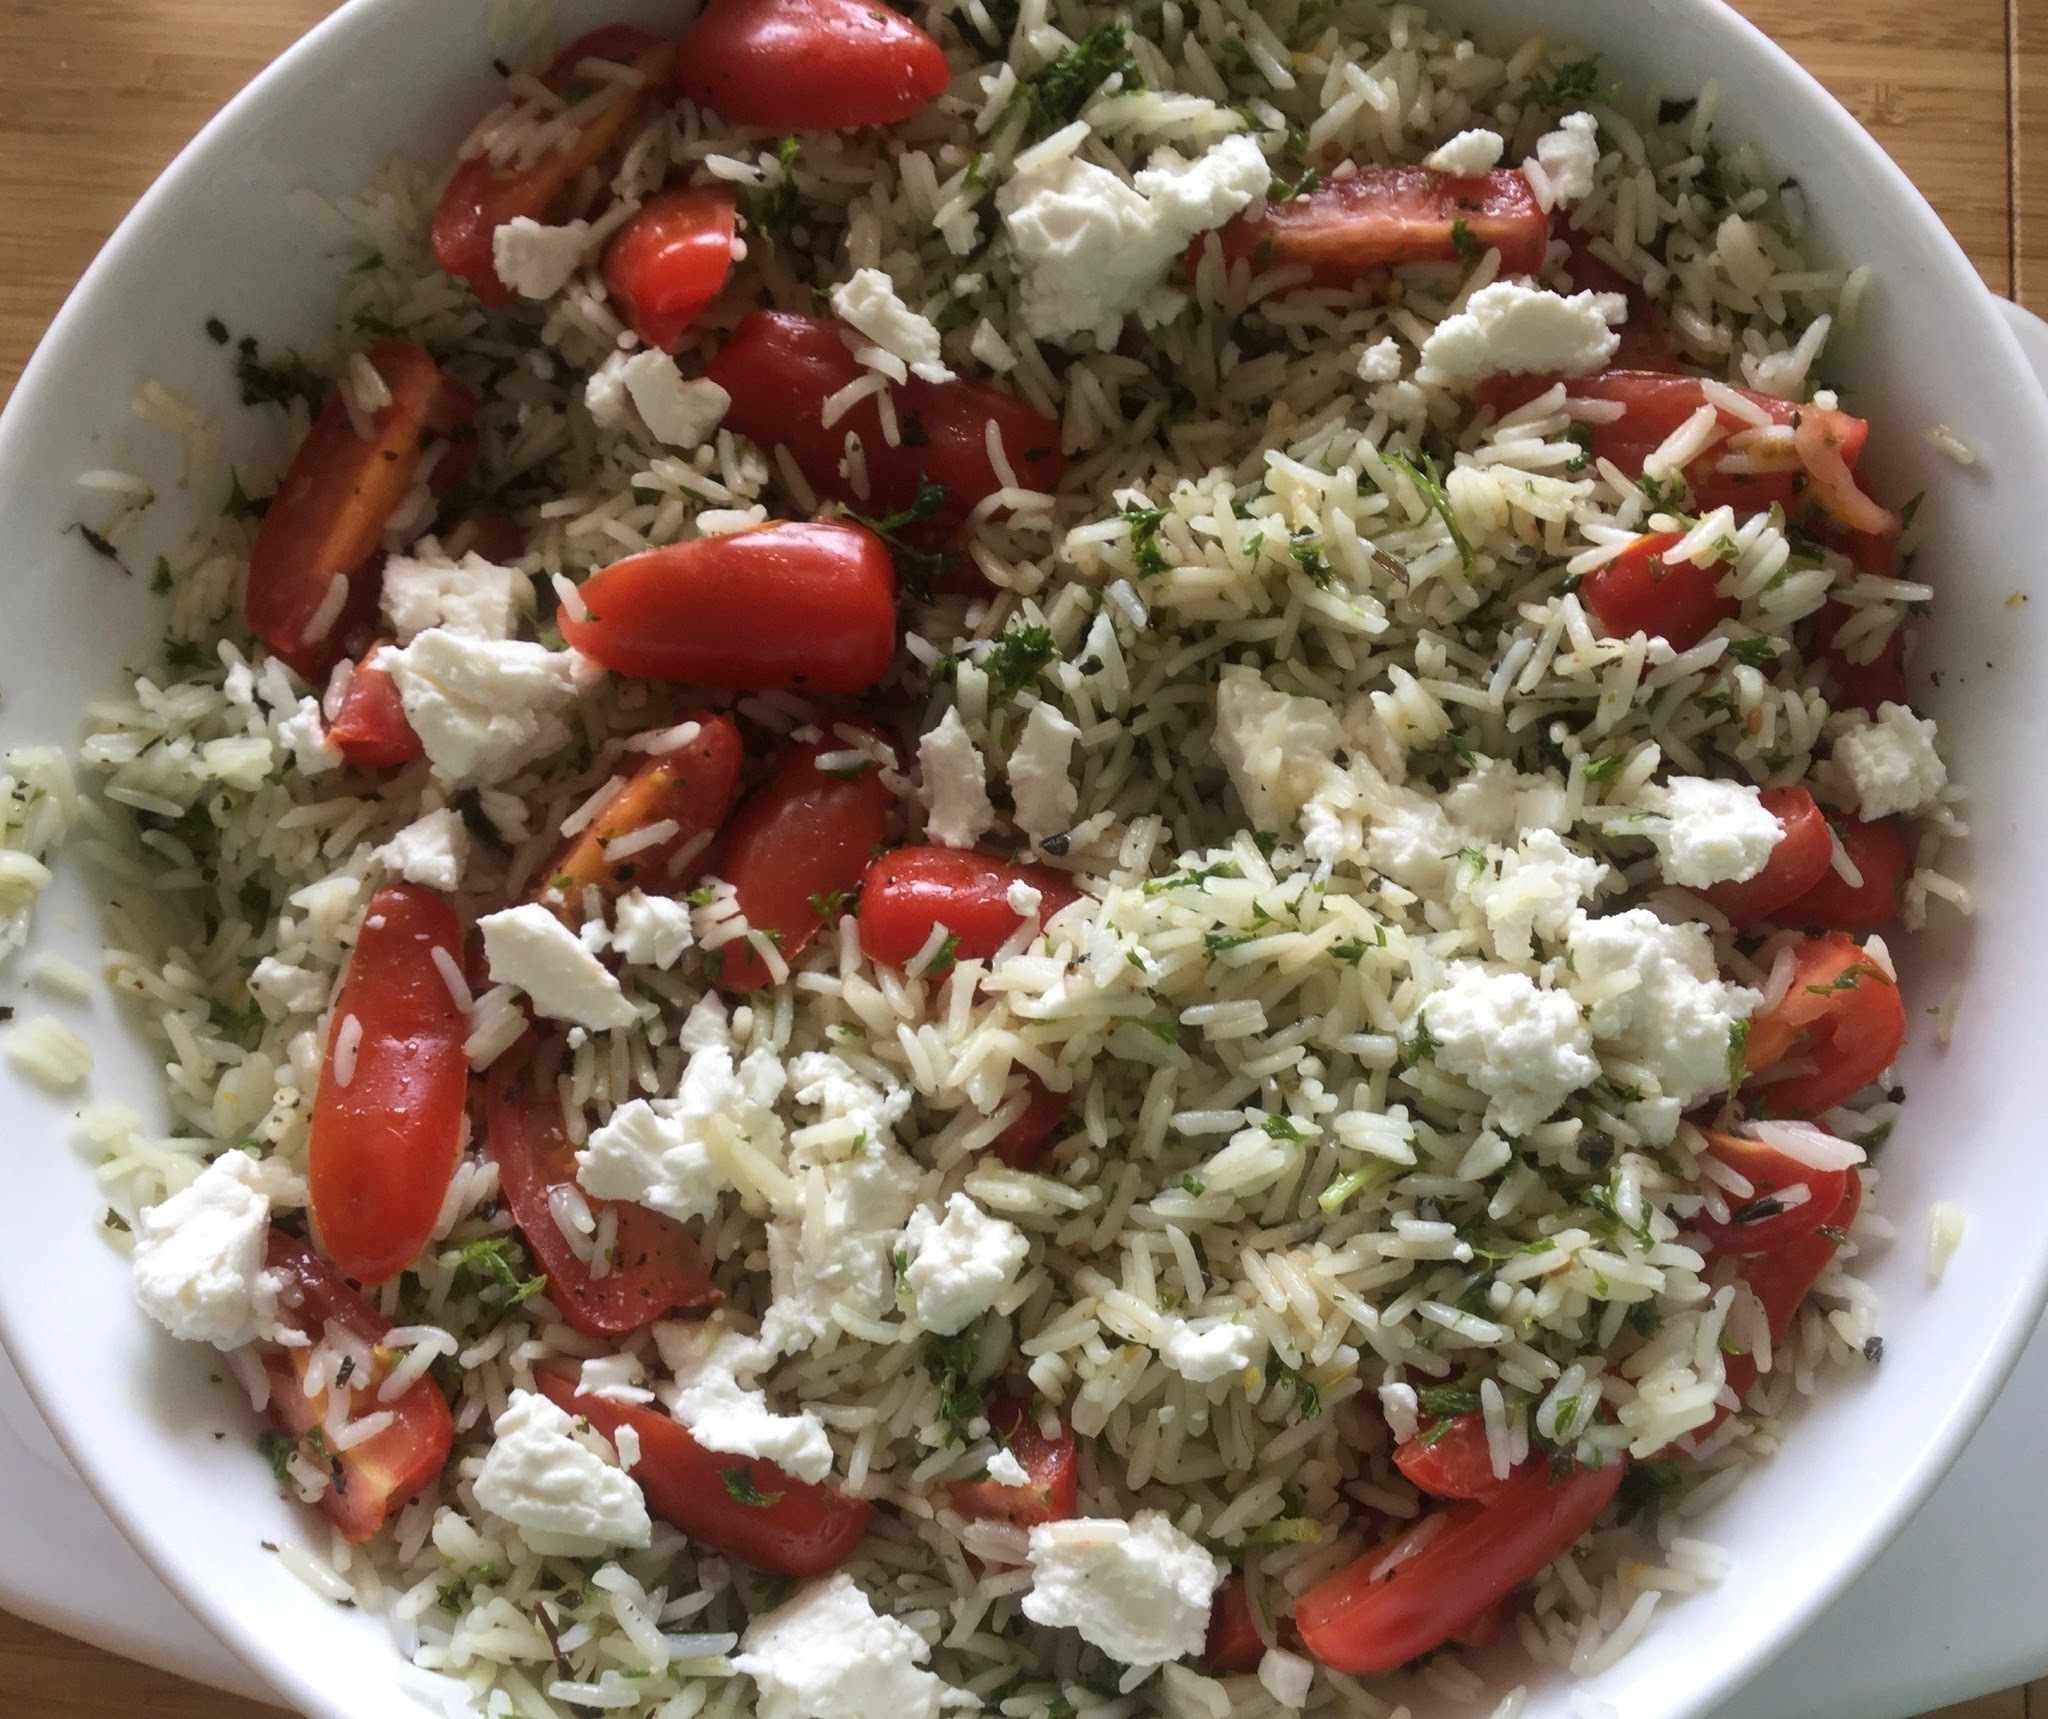 Herbed Rice, Cherry Tomato and Feta Salad - Add Meatballs - Dinner Sorted